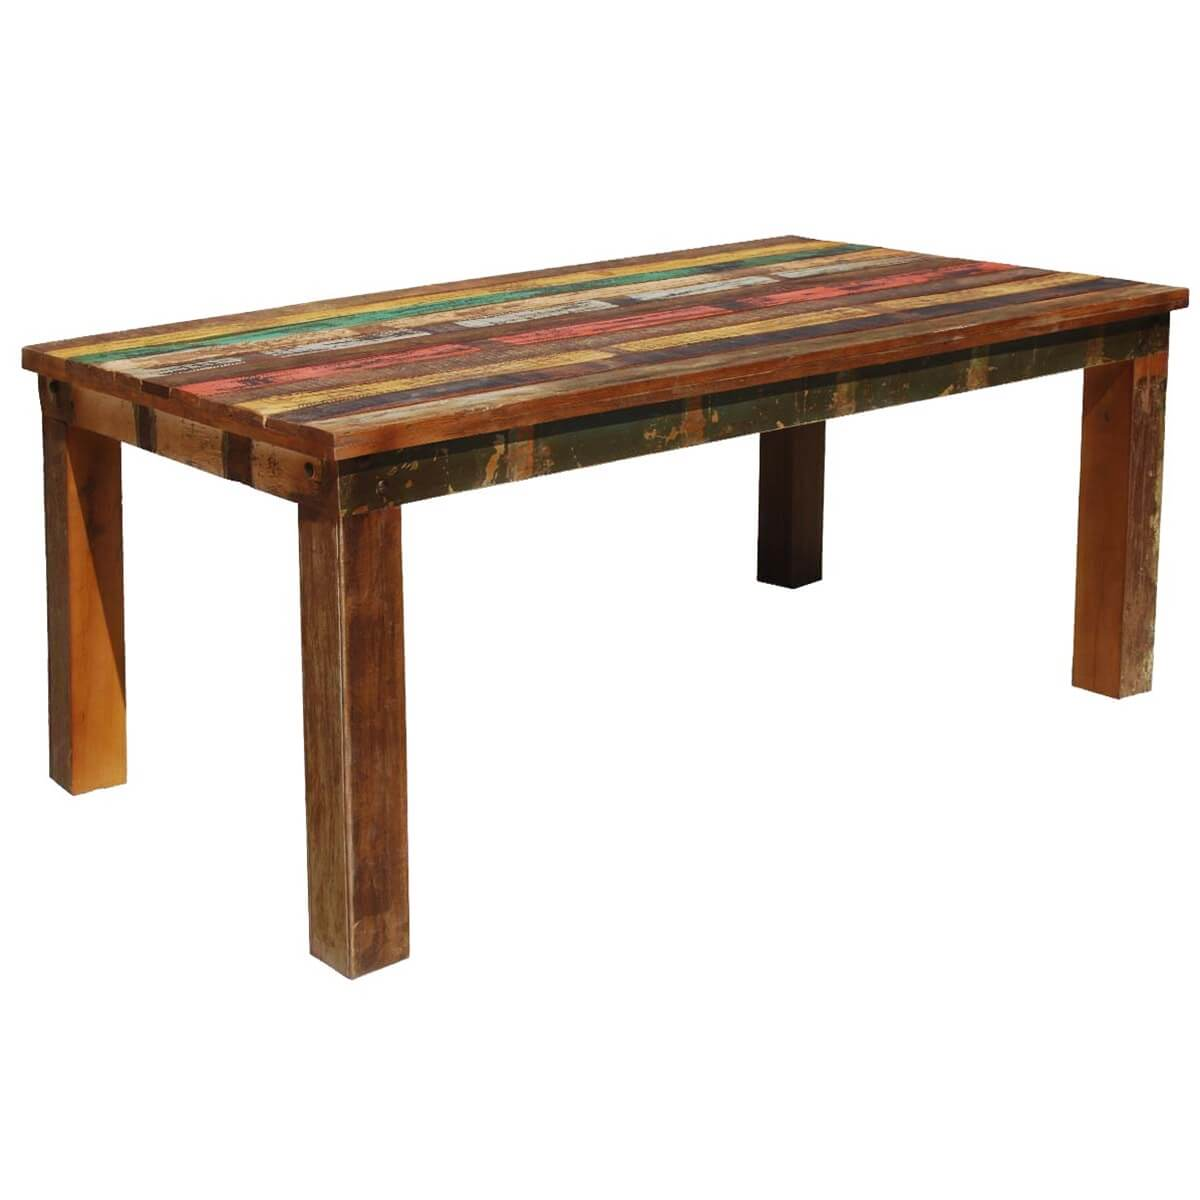 Appalachian rustic reclaimed wood striped dining table for Dinner table wood